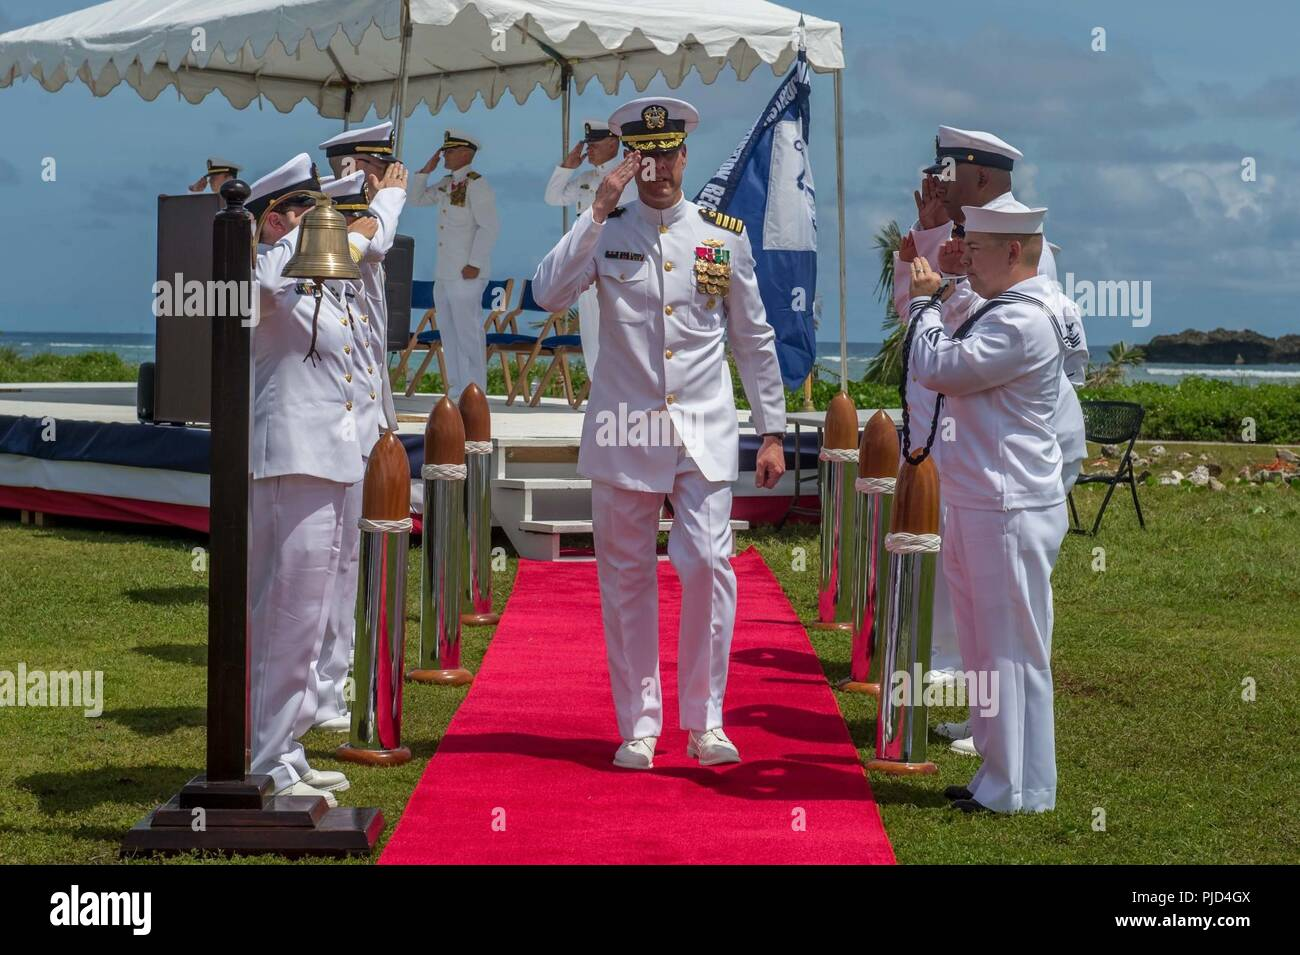 ASAN BEACH, Guam (July 19, 2018) Capt. Steven Stasick, commodore of the 30th Naval Construction Regiment, salutes sideboys following 30 NCR's change of command ceremony. Stack relived Capt. Jeffrey Kilian during the ceremony at the War in the Pacific National Historical Park Asan Beach Unit. - Stock Image